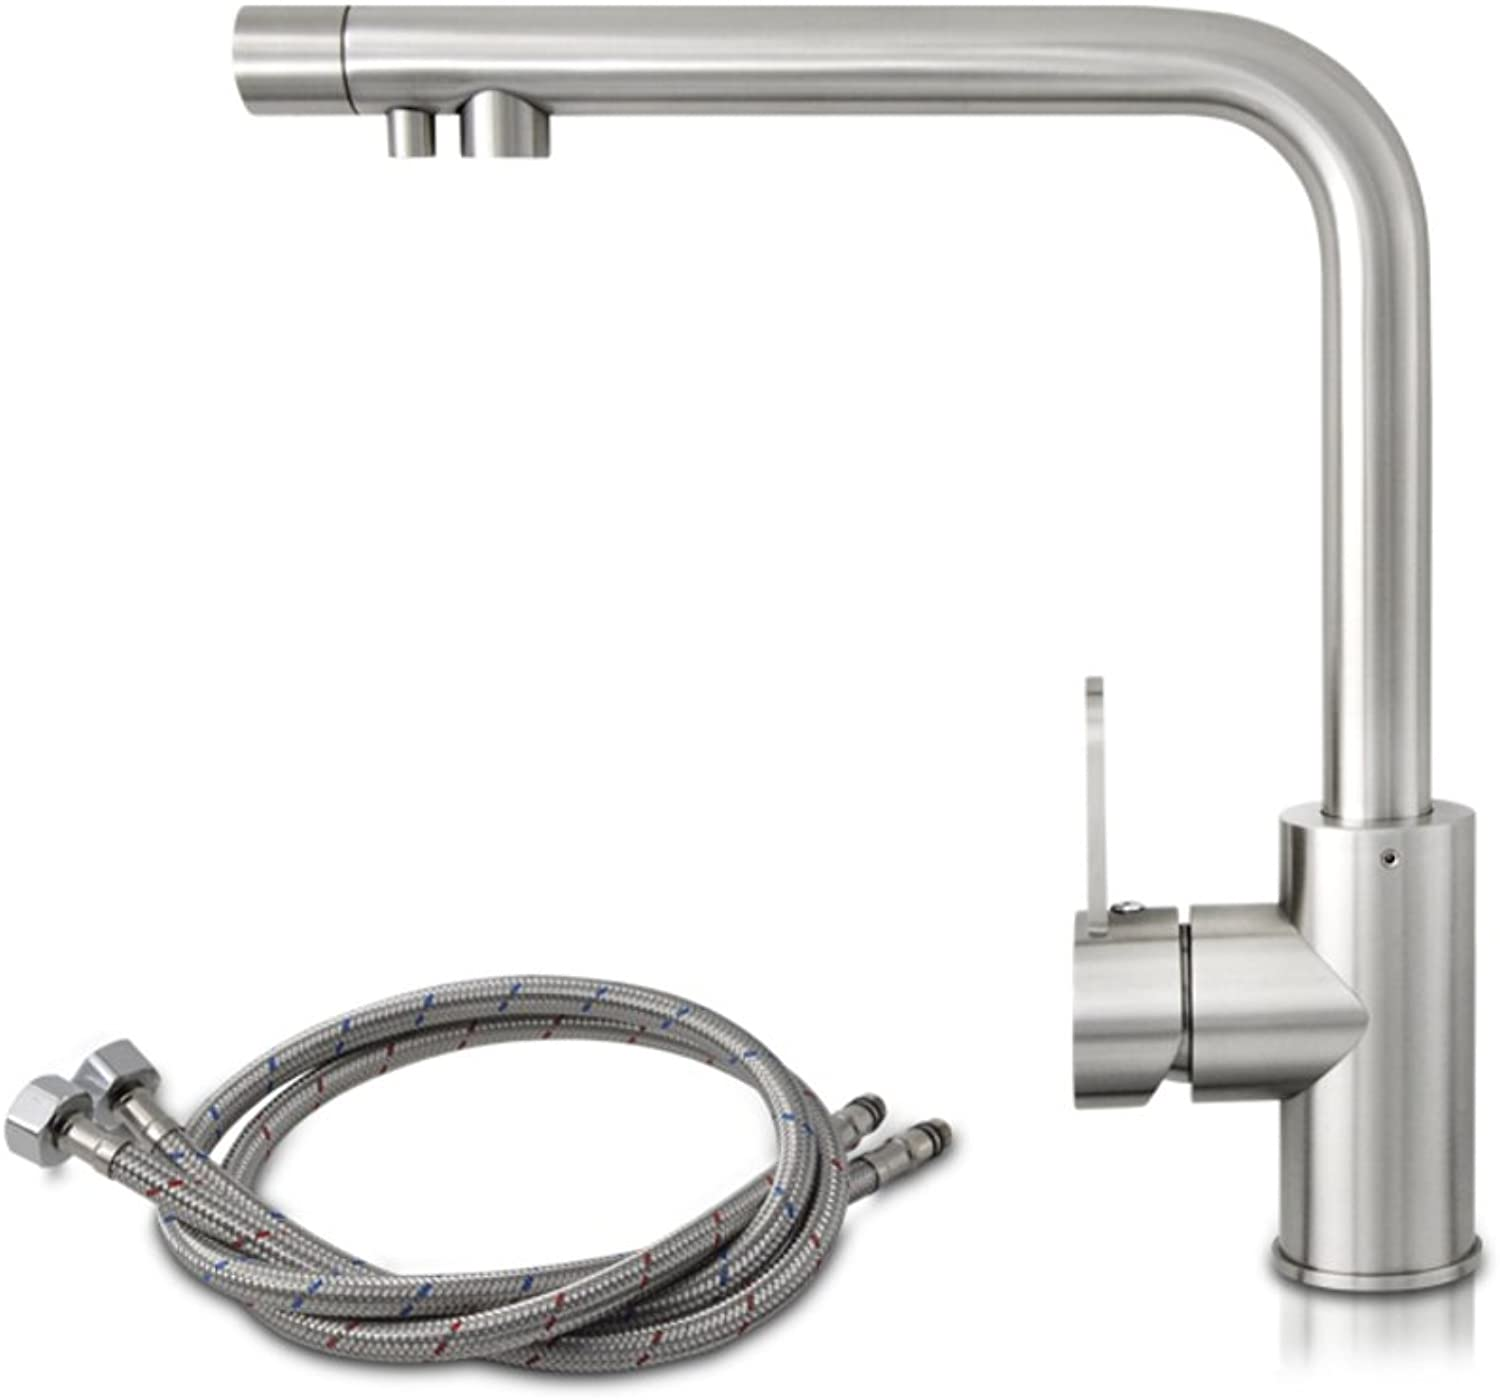 ZHF Lead-free stainless steel faucet Sink faucet Tap both hot and cold Filter Faucet-A